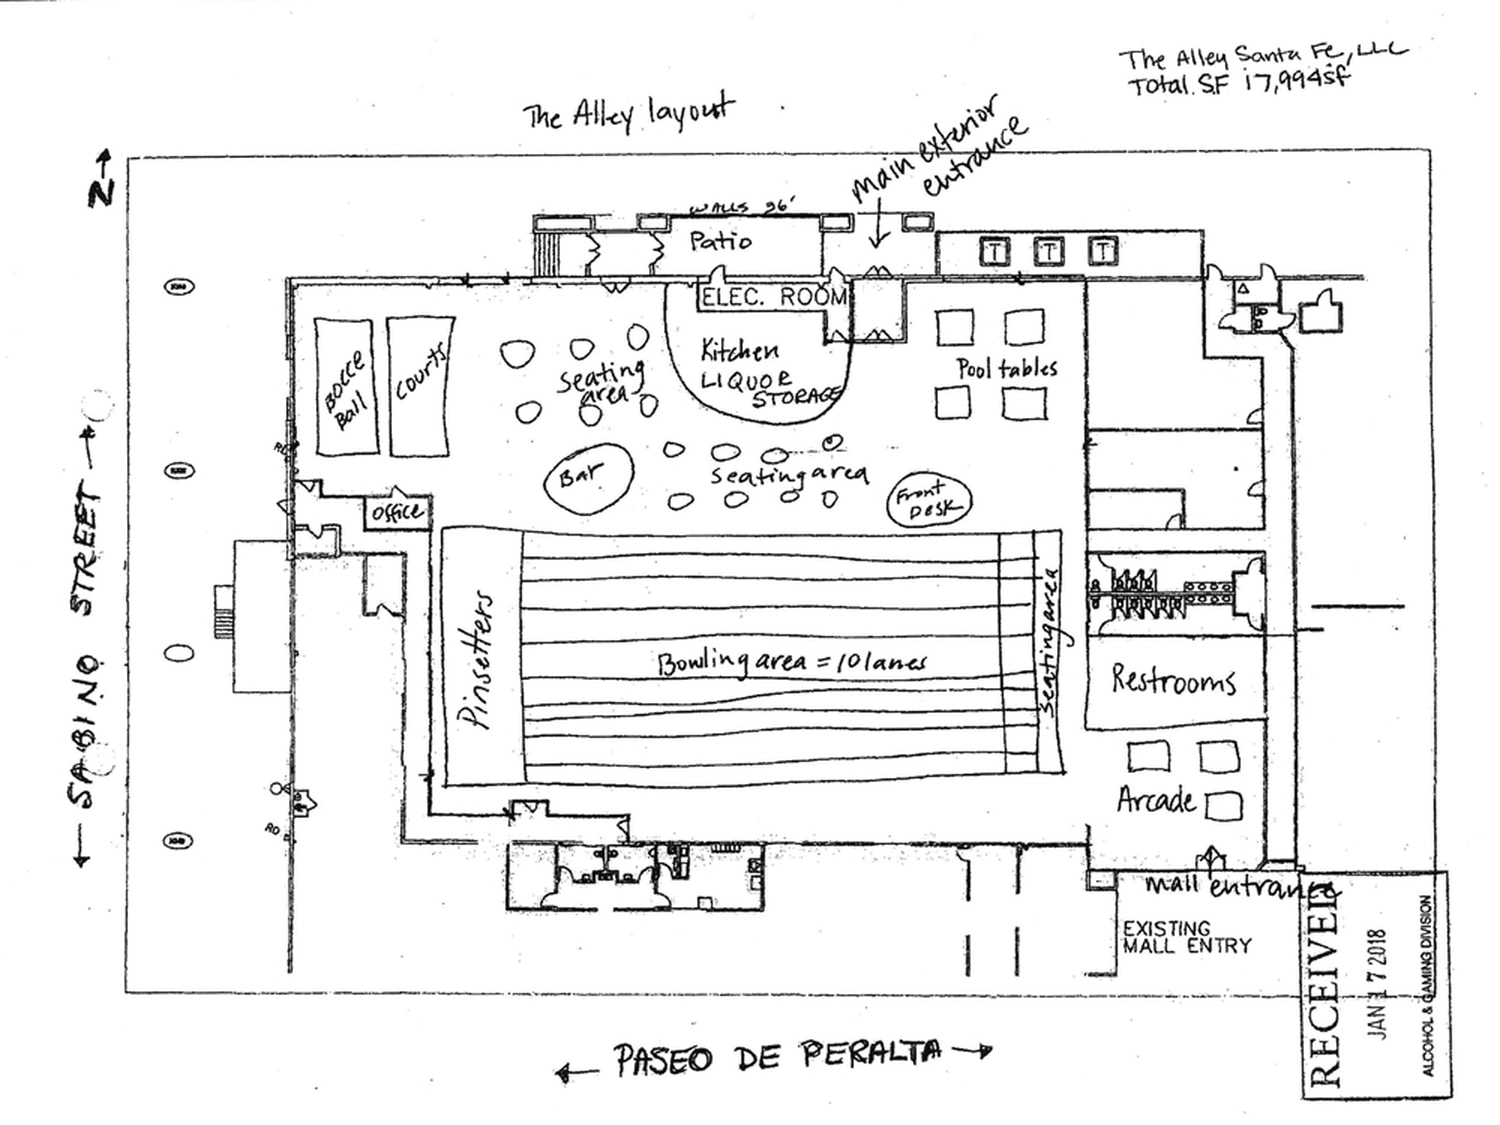 A layout of The Alley, included with the business' application for a liquor license.